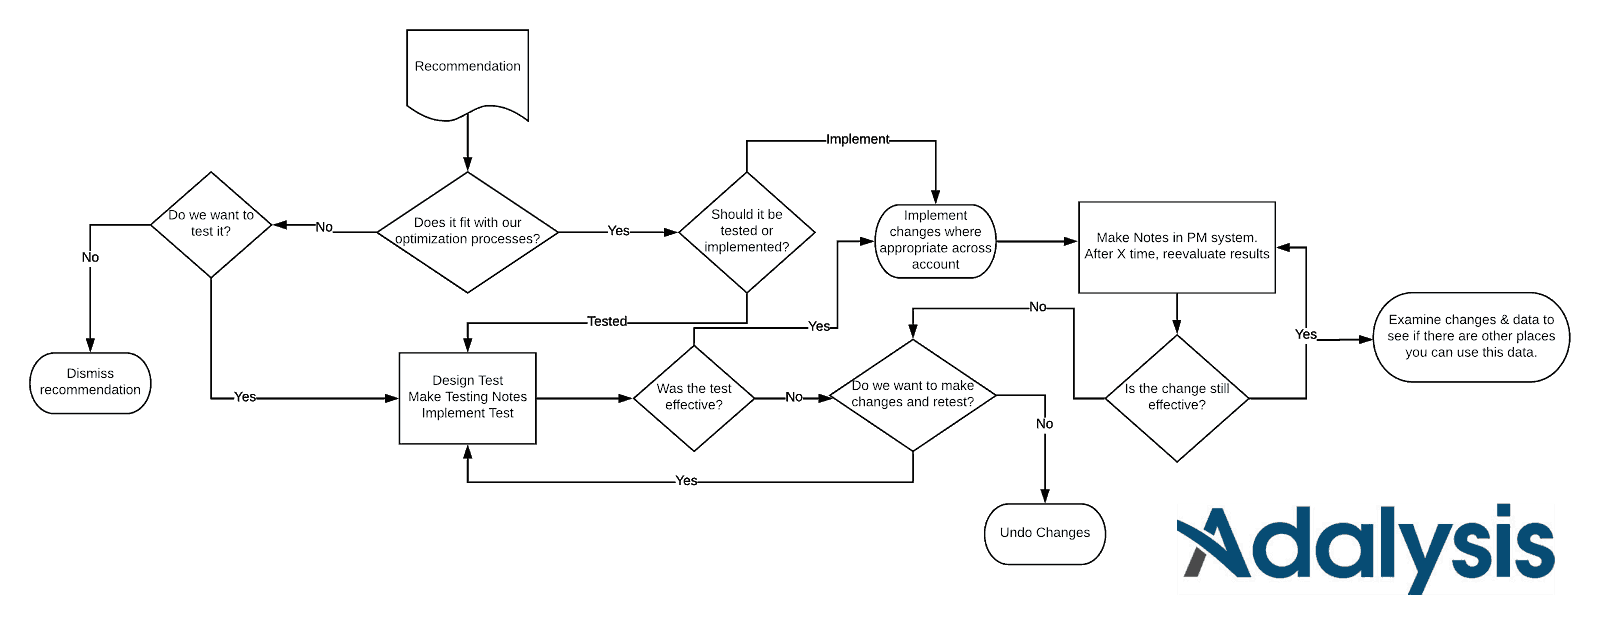 Recommendation Implementation Workflow